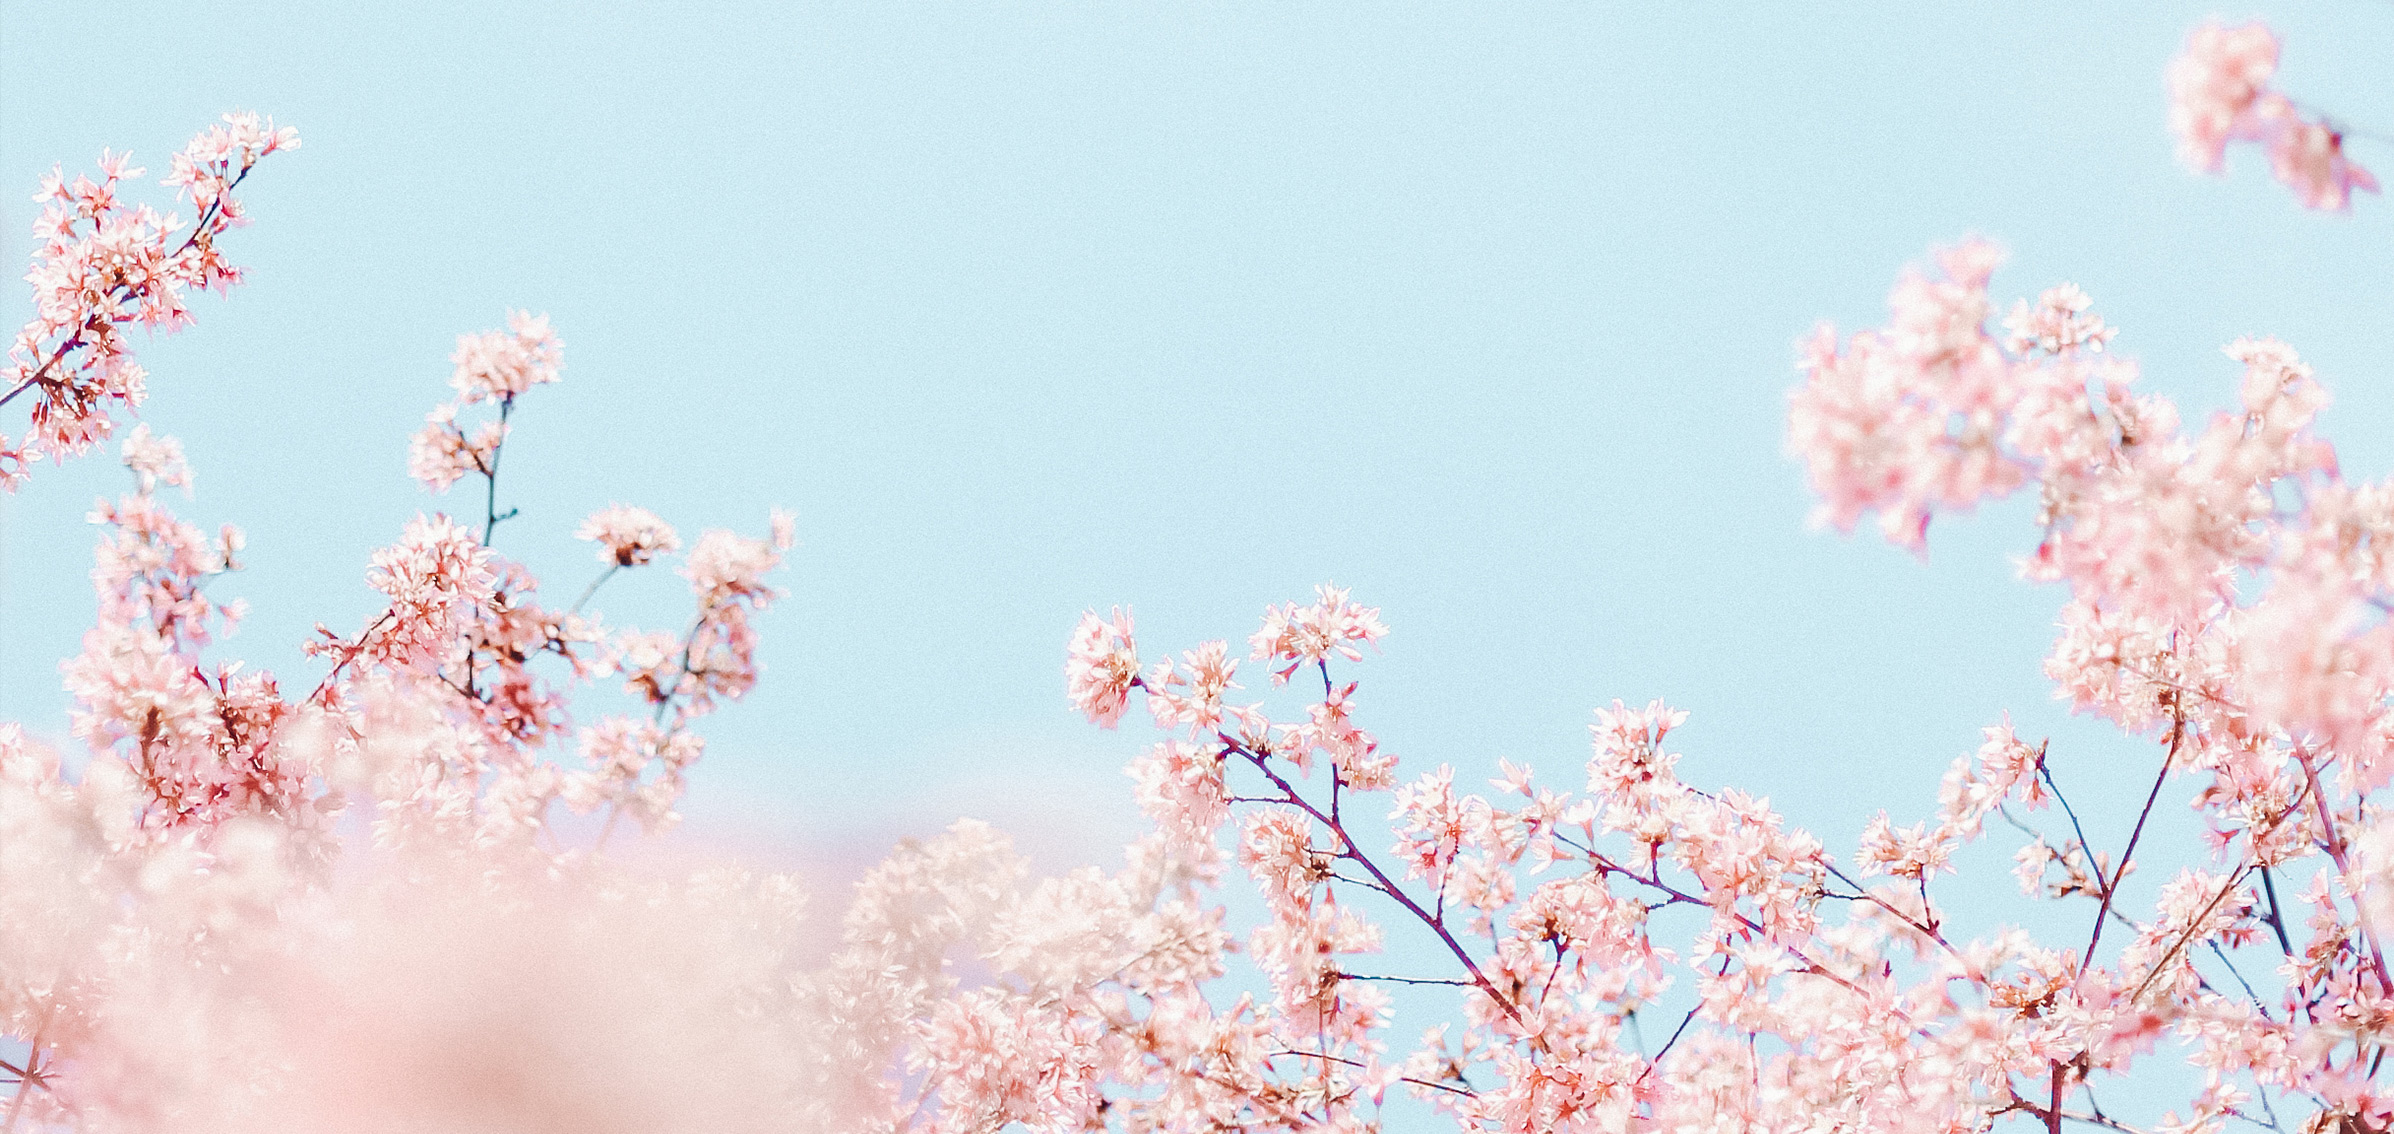 Tree branches filled with pink blooms